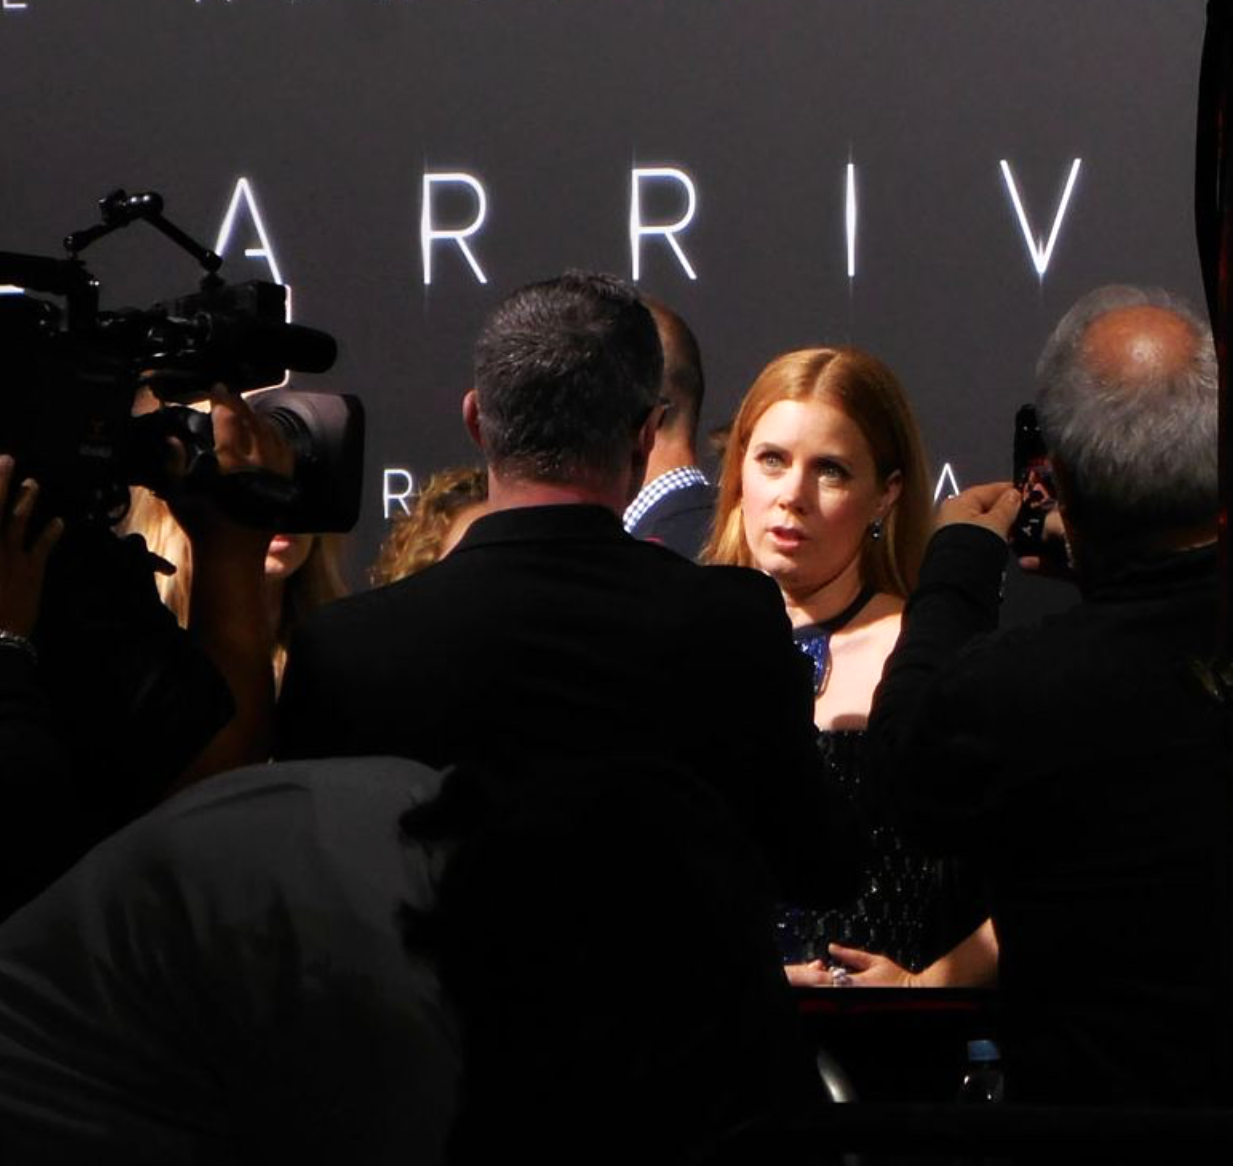 arrival-movie-premiere-amy-adams